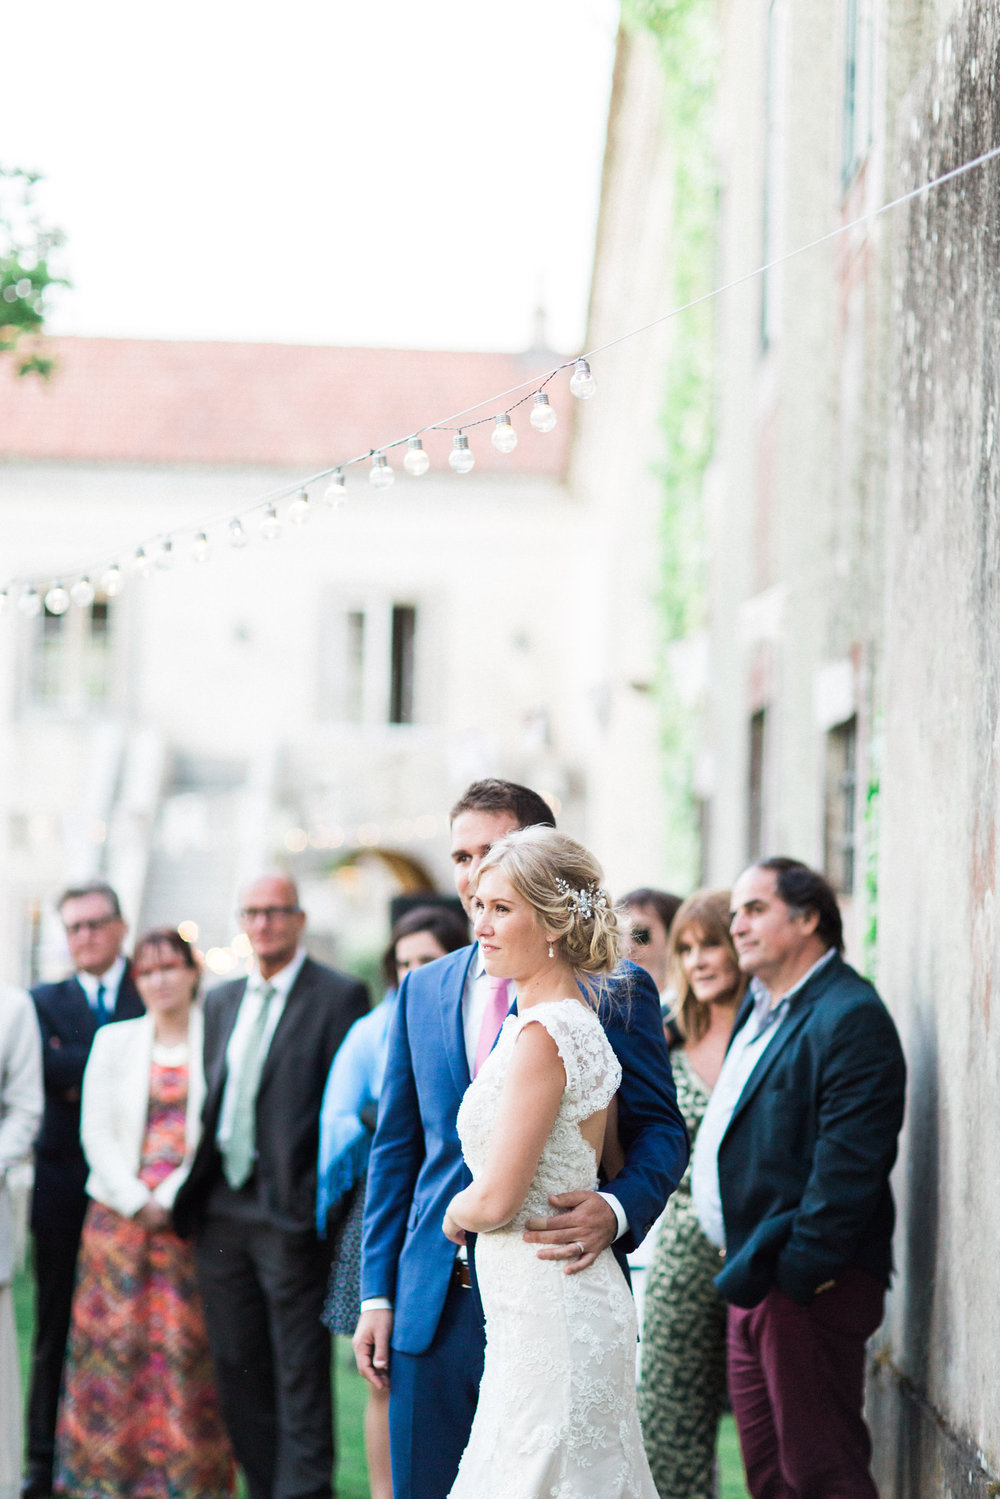 mariaraophotography-sintra-wedding-678web.jpg